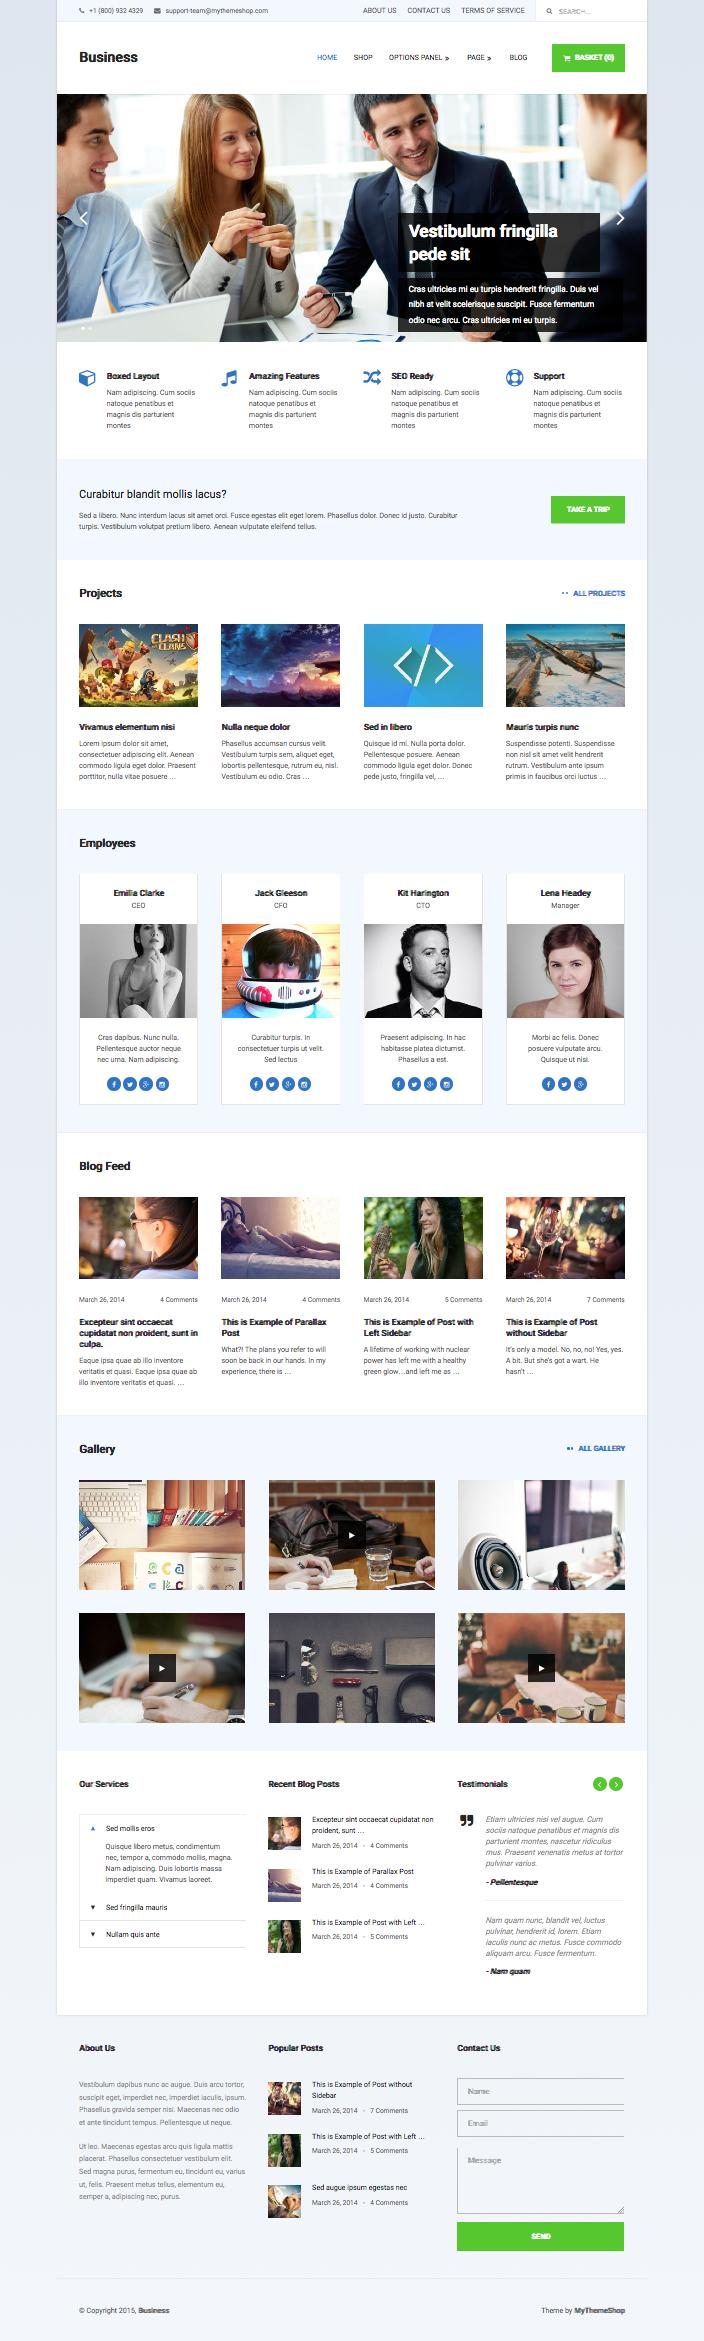 Business WordPress Corporate Style Theme